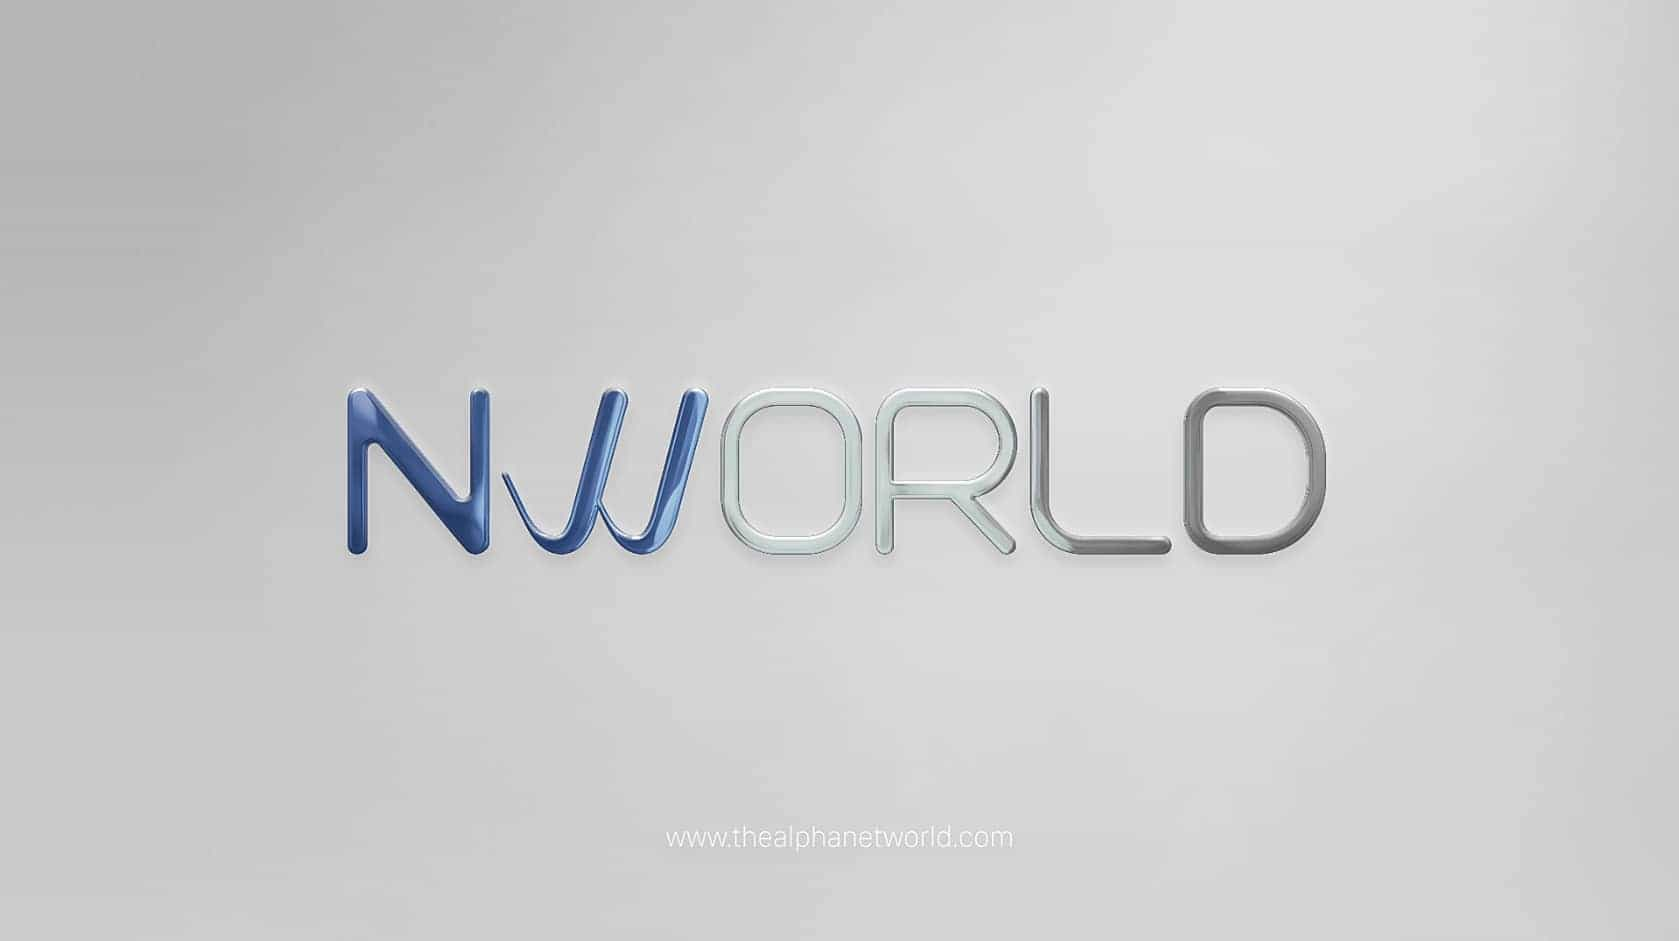 NWORLD: The New Era